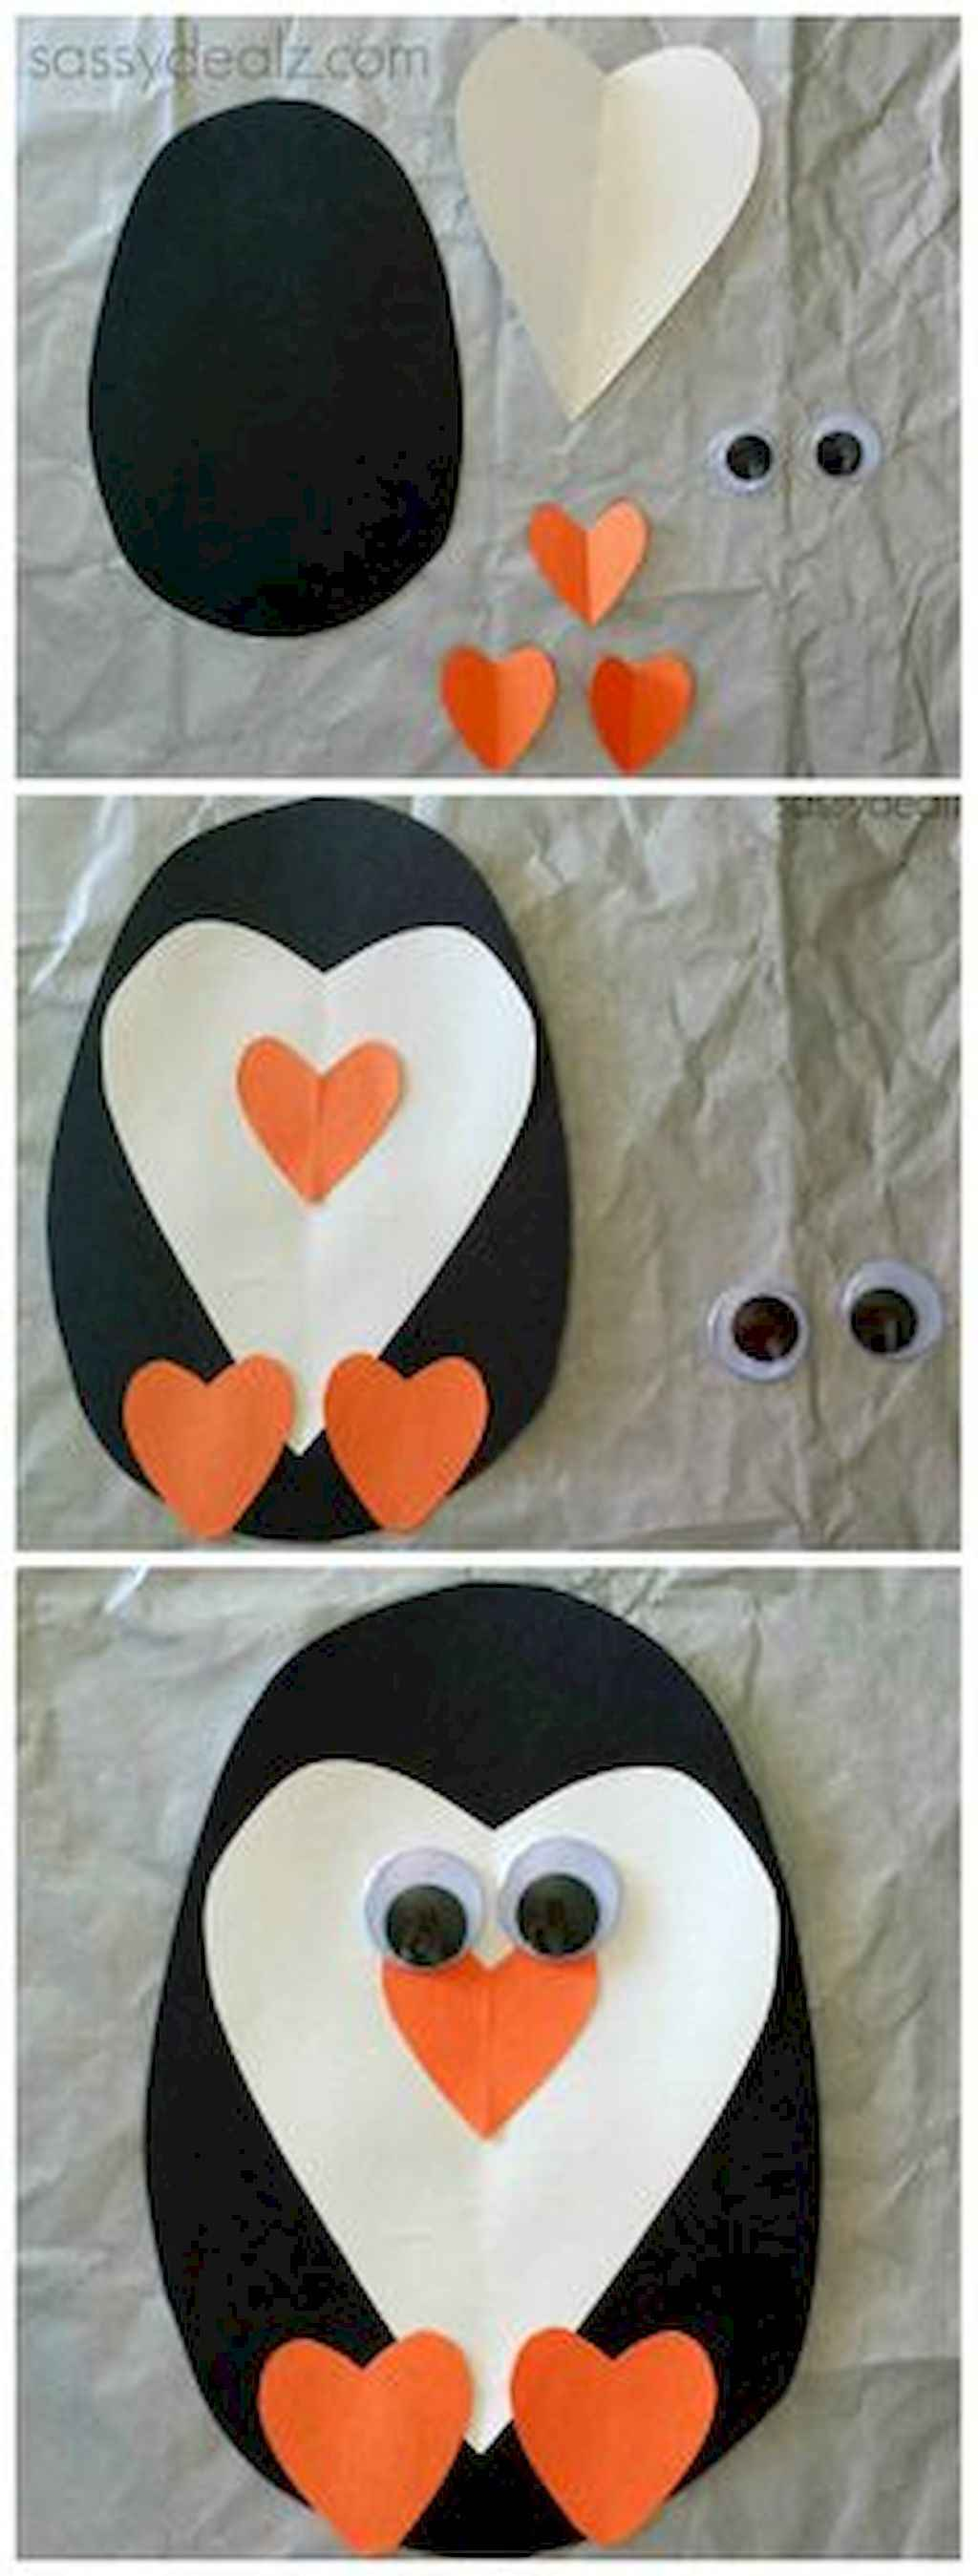 60 Romantic Valentines Crafts Ideas On A Budget (3)